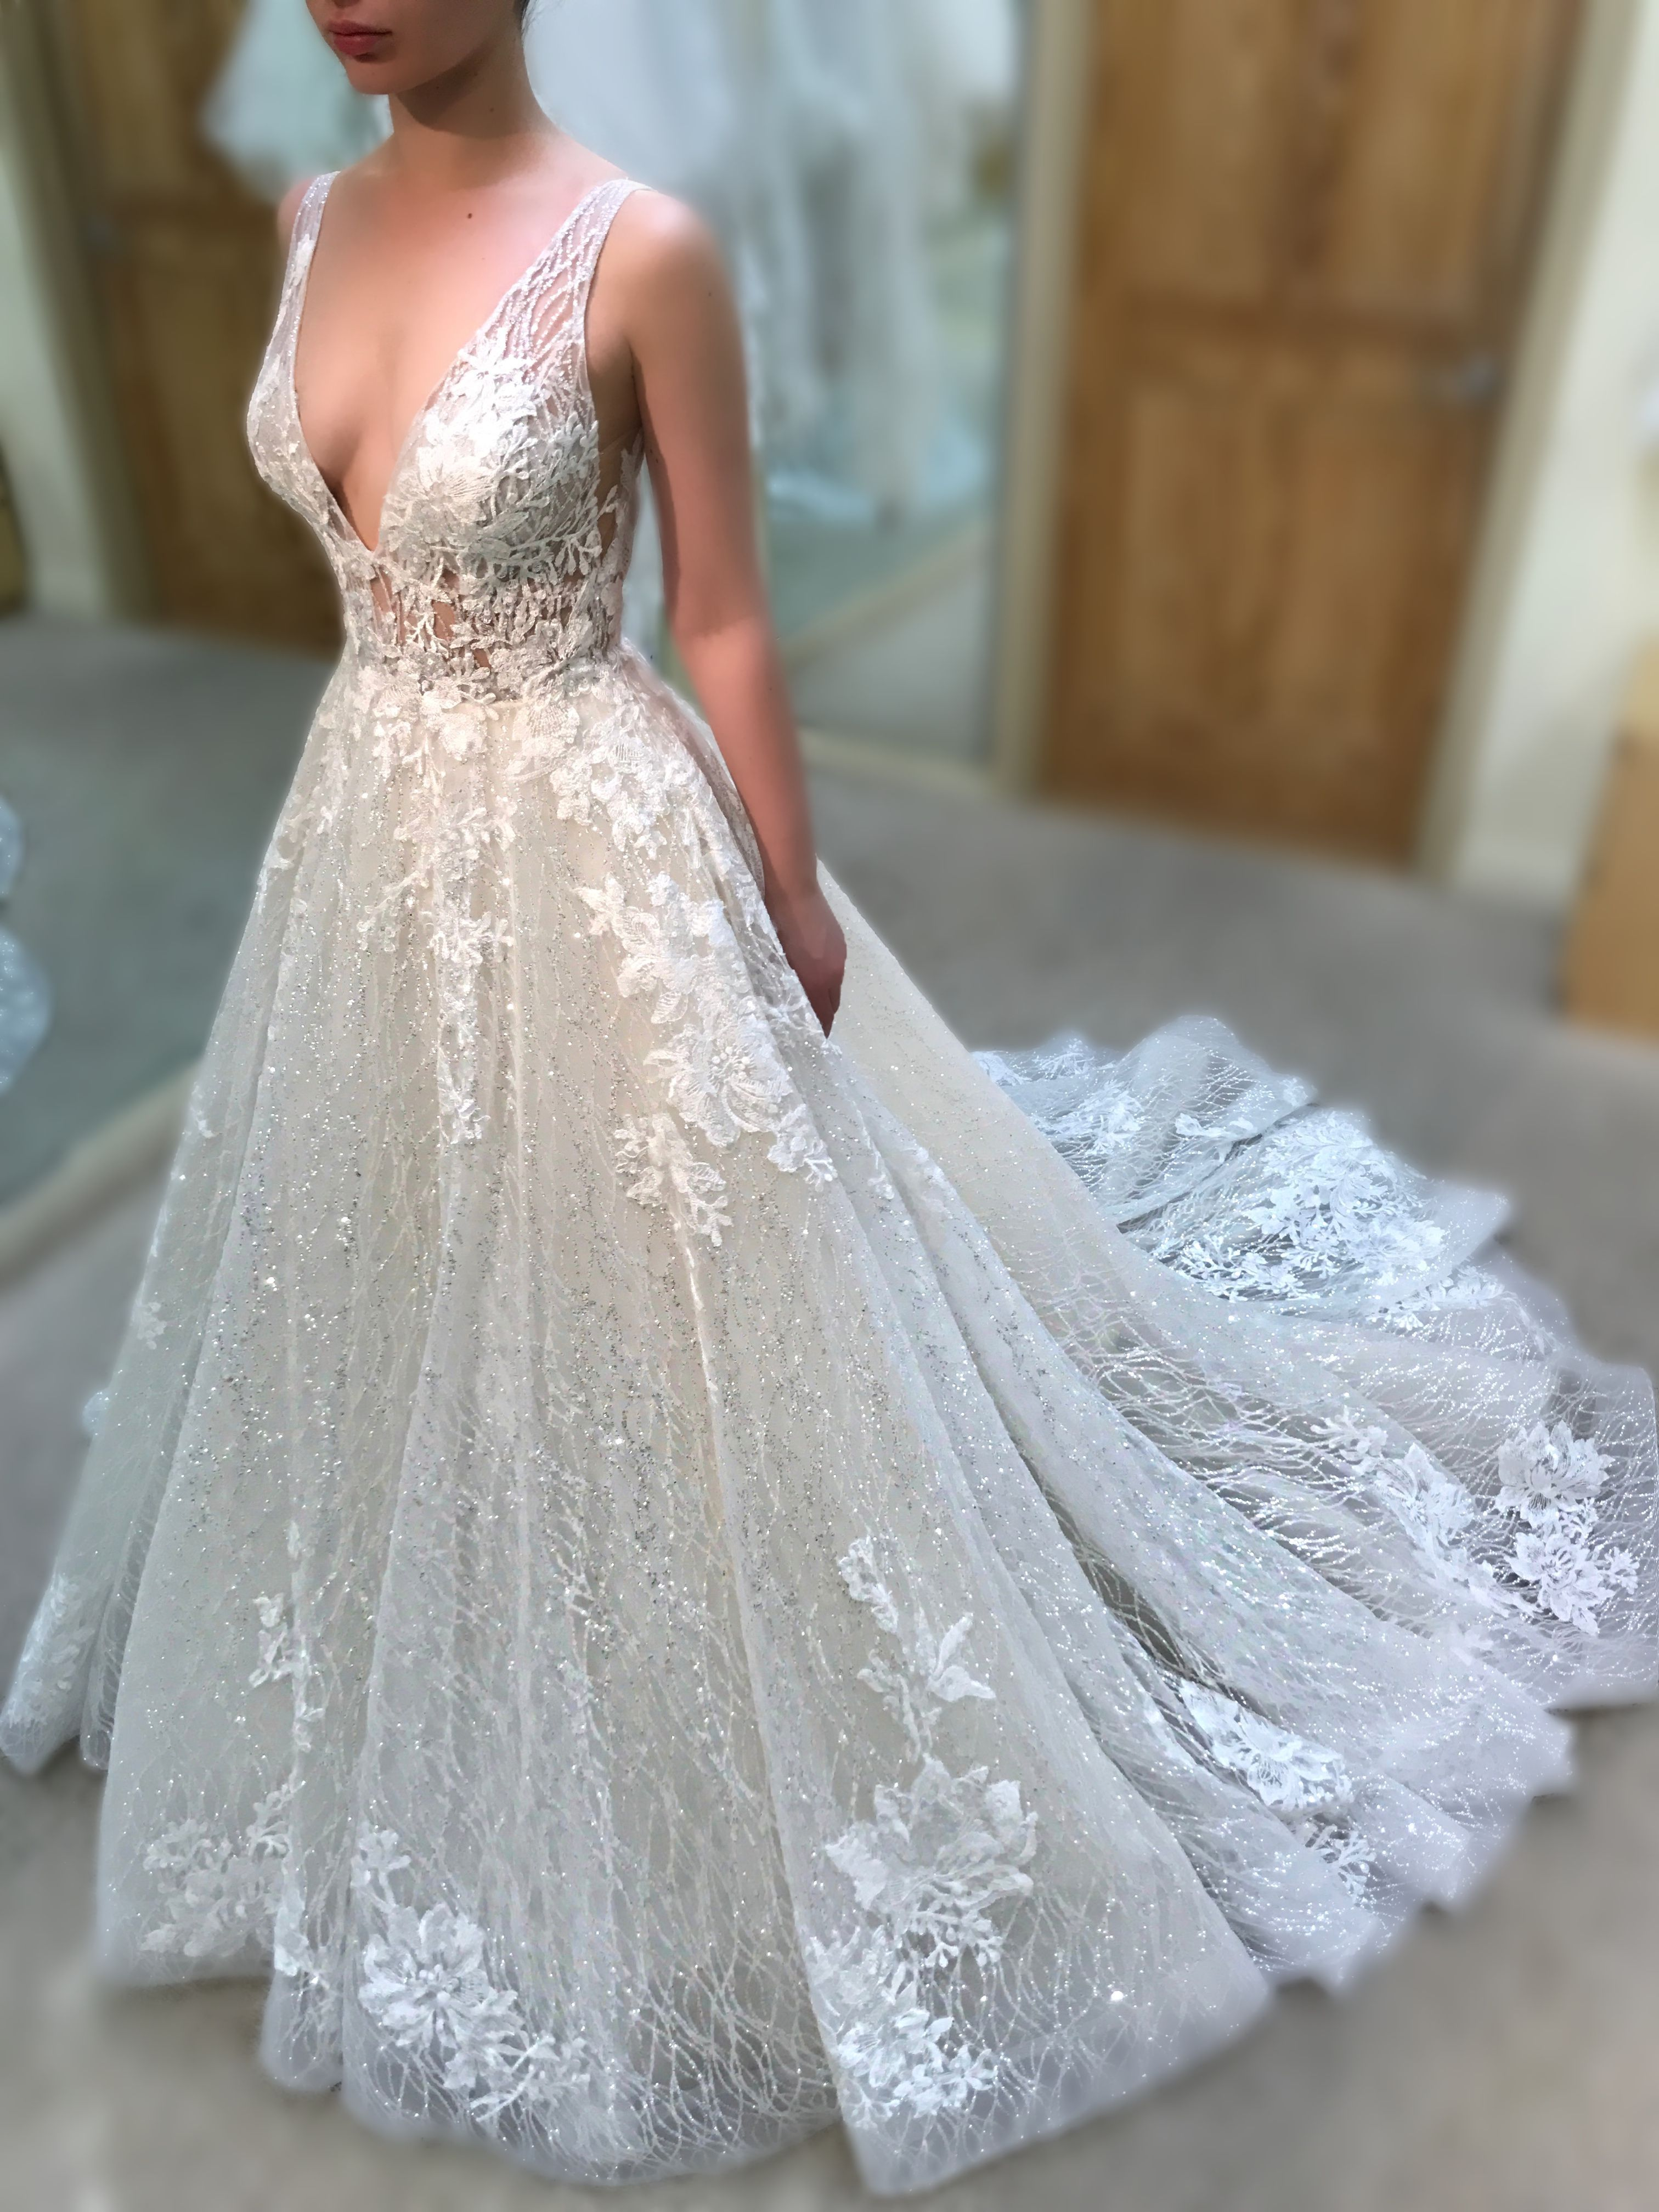 Nile By Enzoani Available At The Bridal Studio In Salt Lake City Utah Nile Is A Sparkly Weddin Enzoani Wedding Dresses Sparkle Wedding Dress Long Bridal Gown